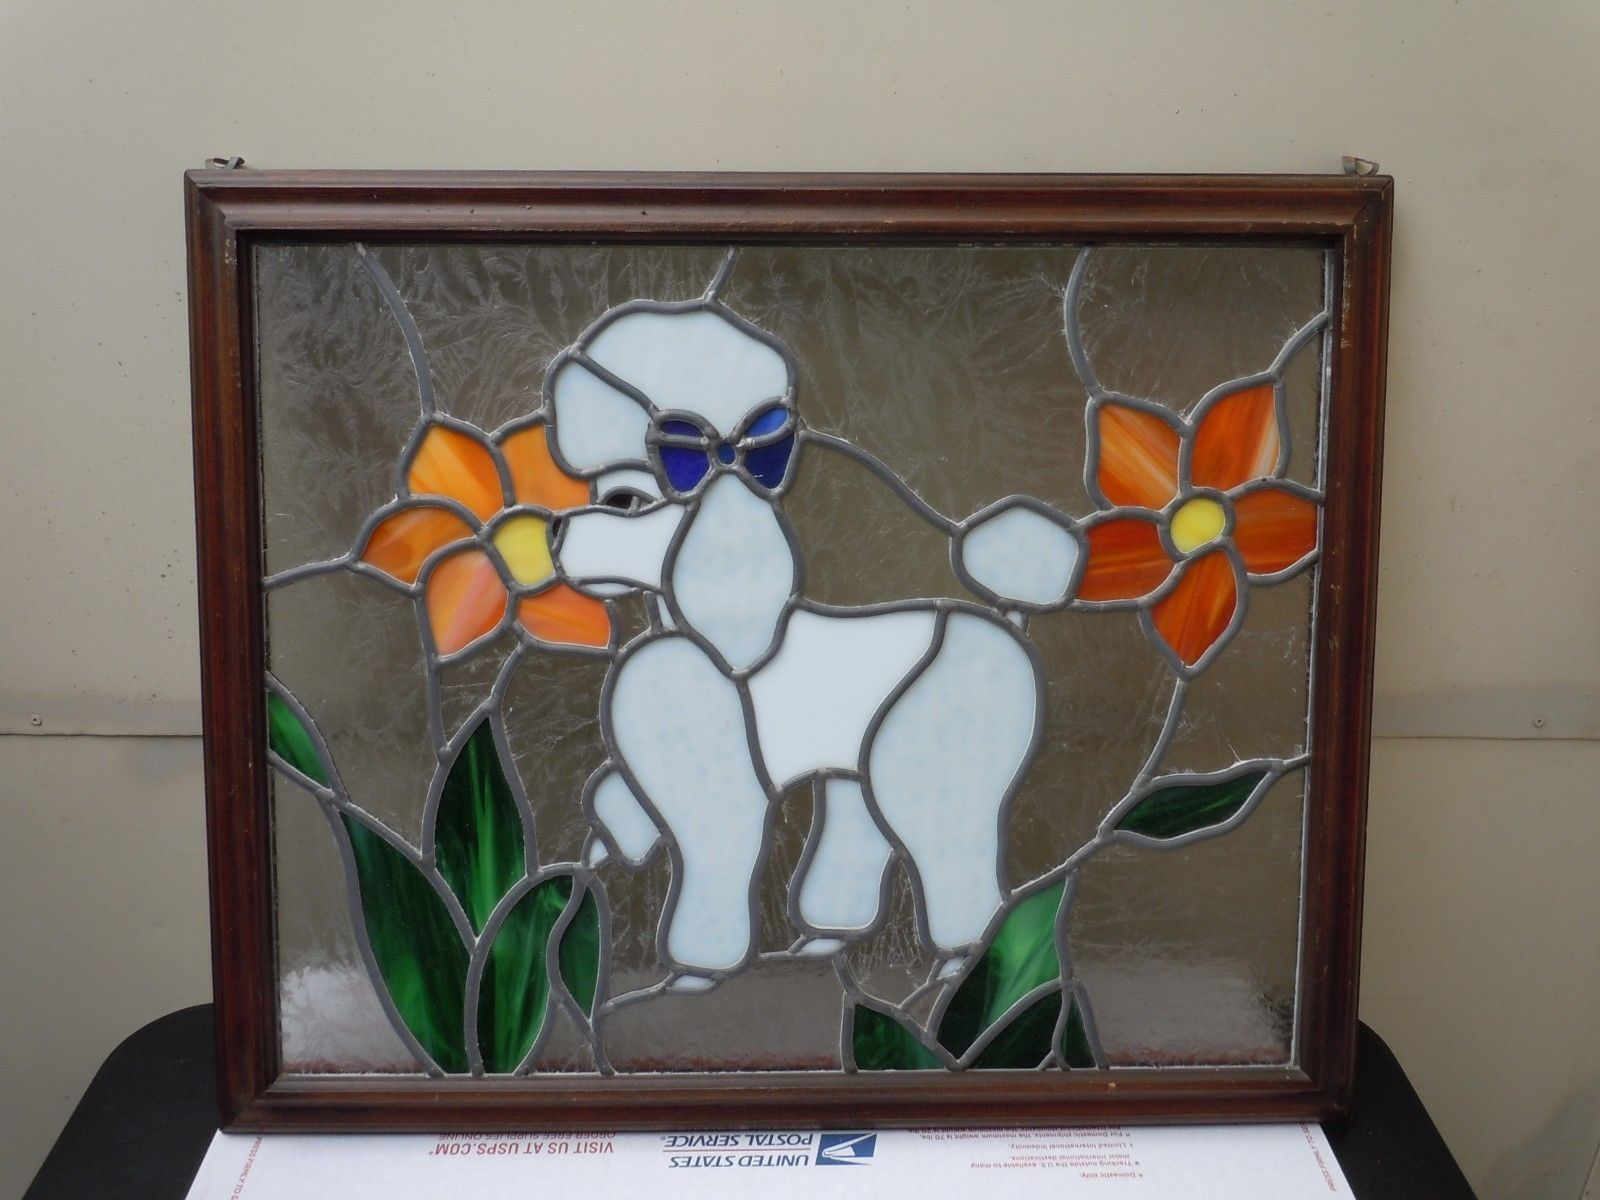 Wooden Framed Stained Glass Poodle Dog Hanging Beautiful - Ebay